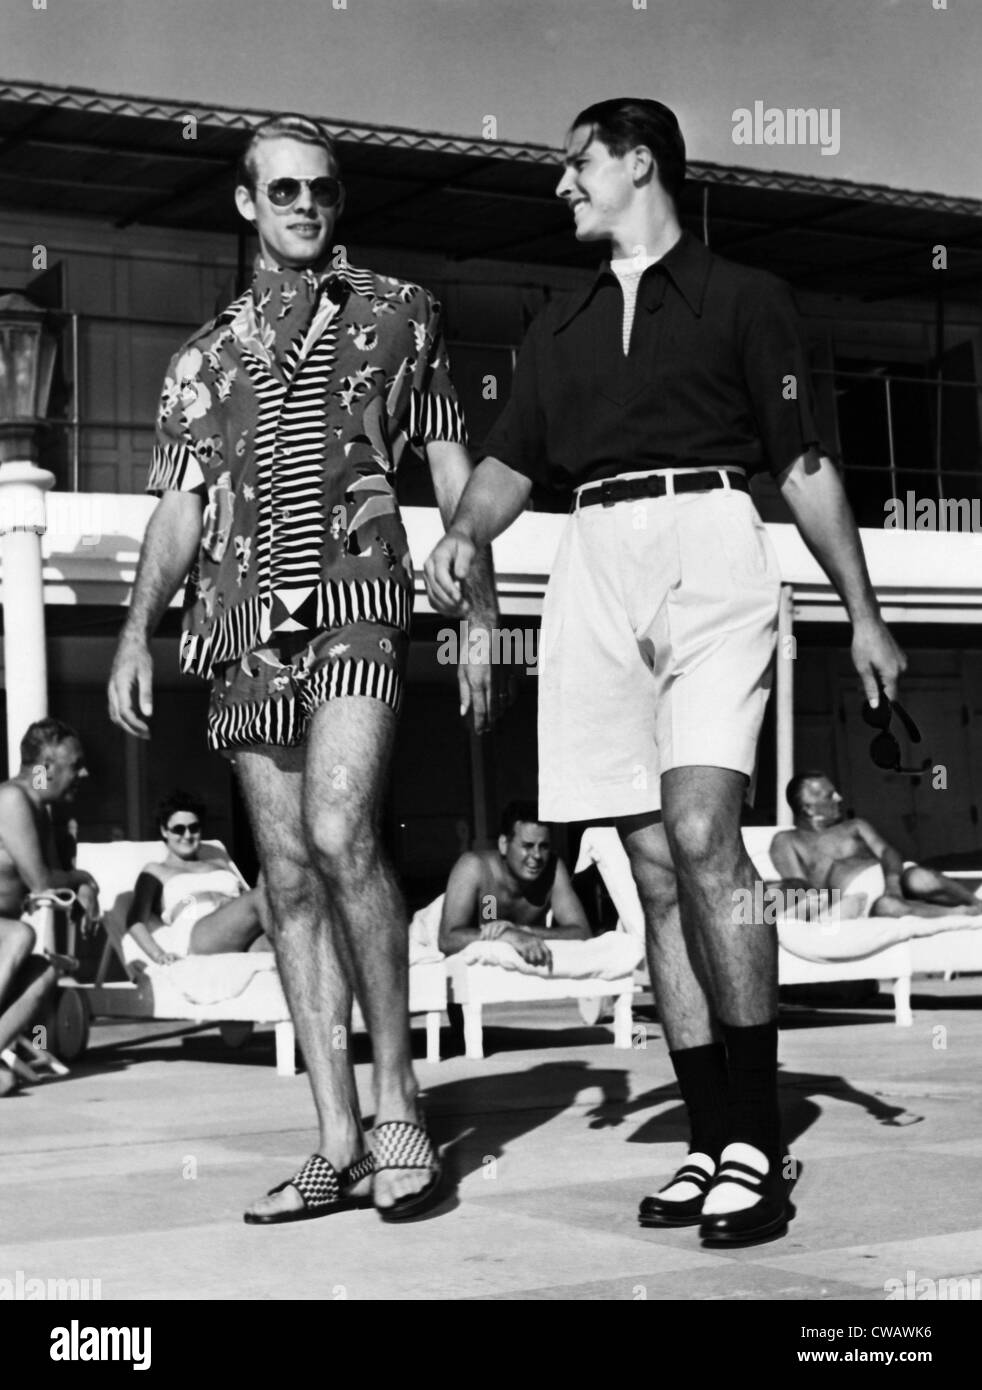 Men wearing the latest beach fashions. On the left, a colorful Mexican design; on the right, longer shorts and an - Stock Image